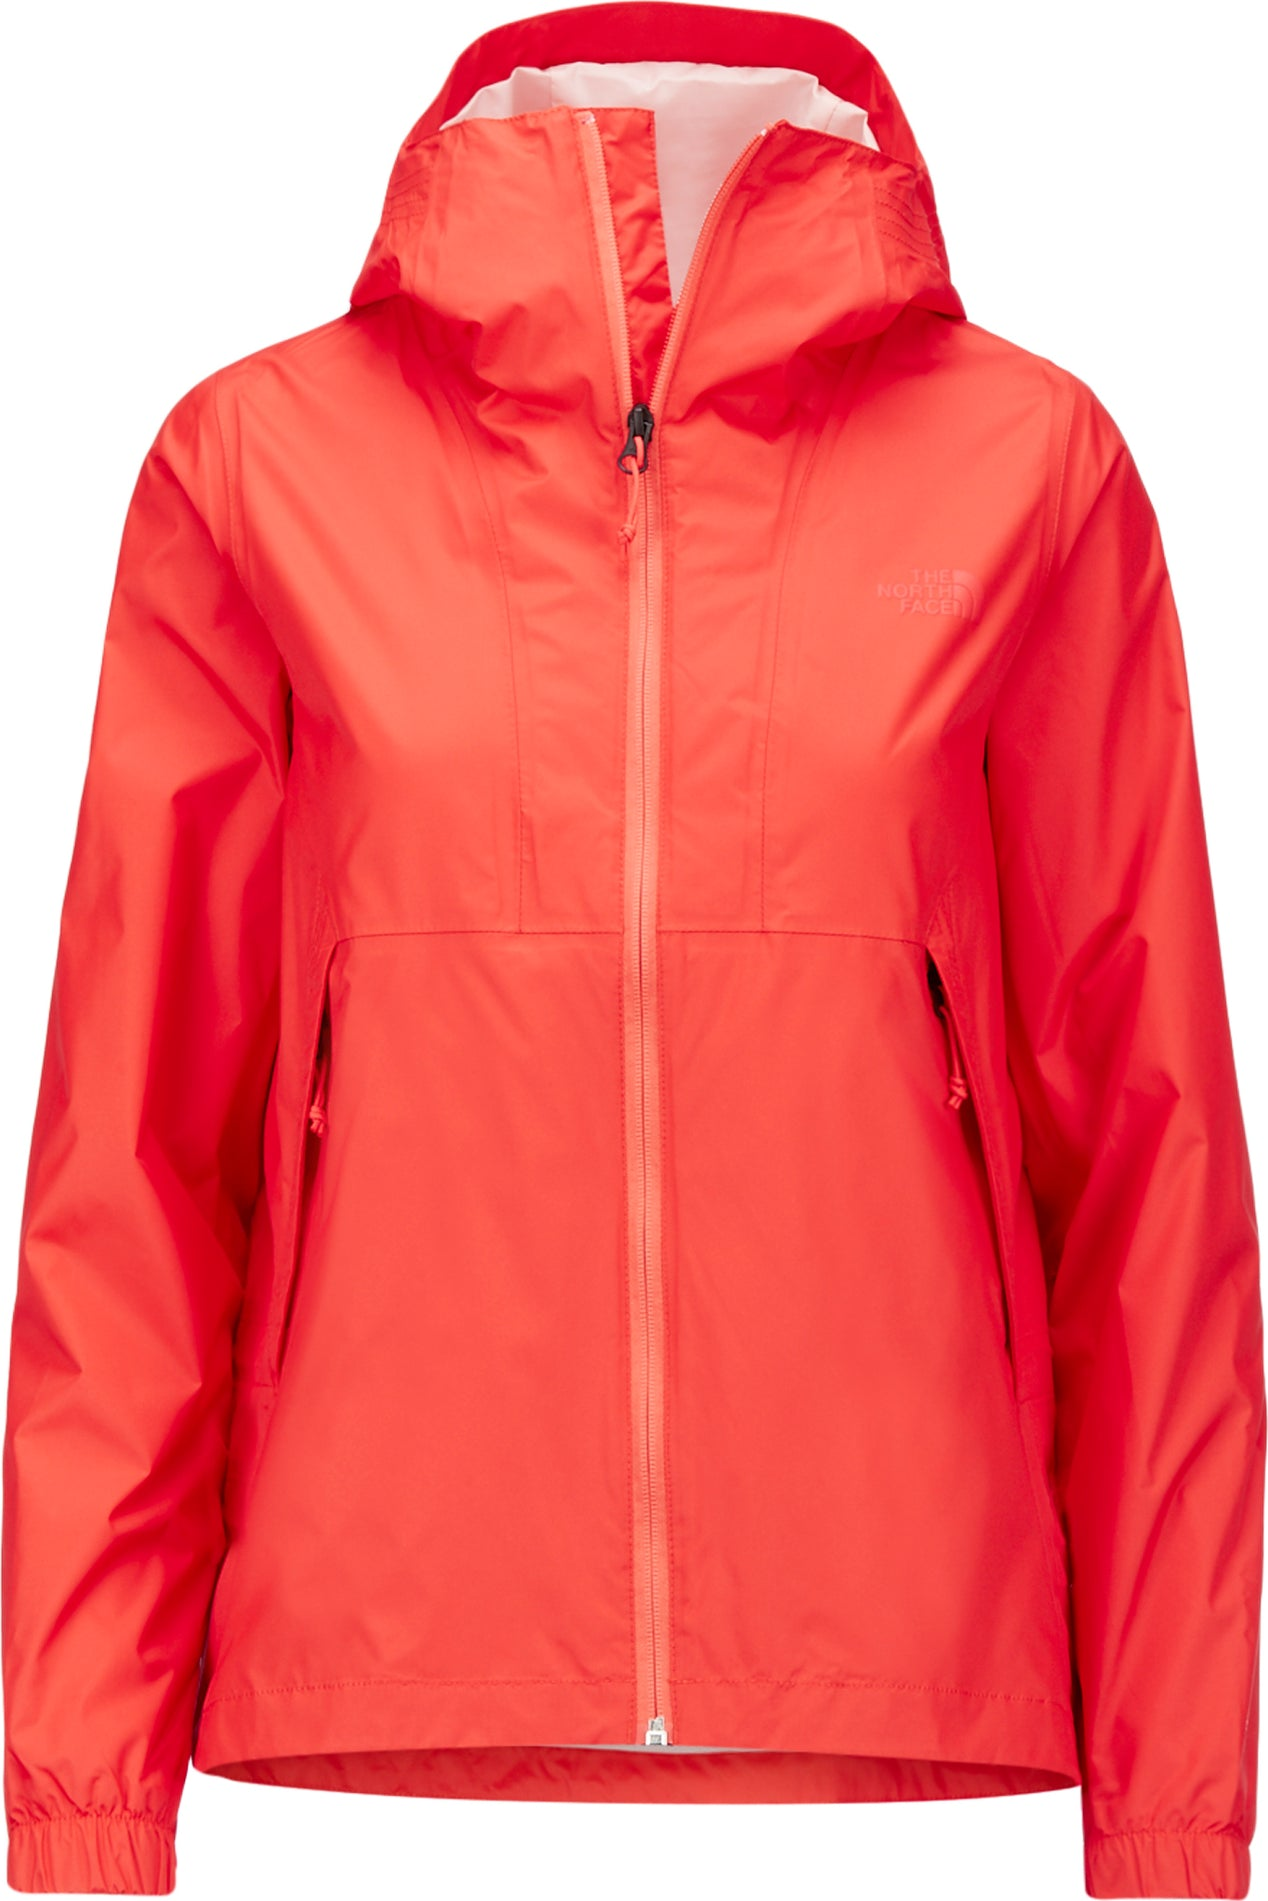 a6fc68f1d Phantastic Rain Jacket - Women's